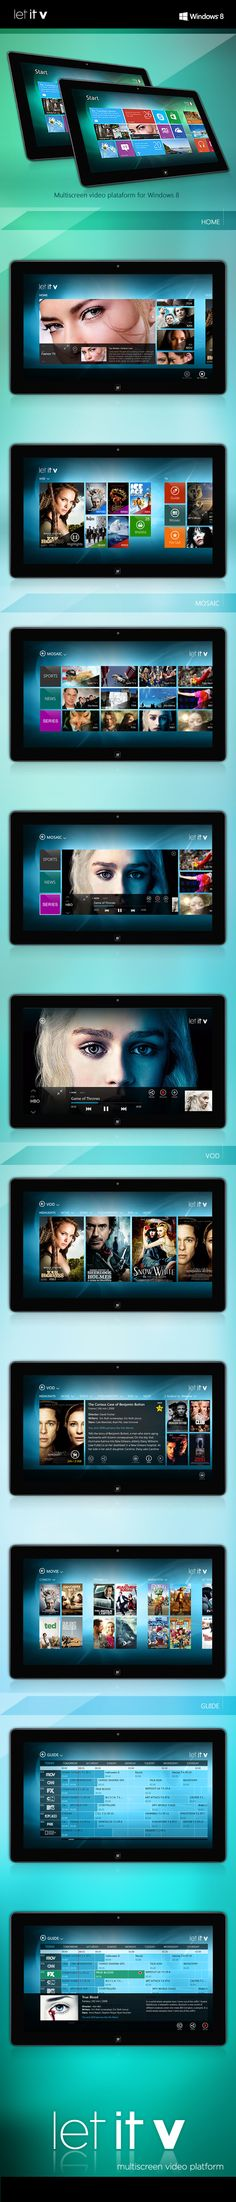 Let it v - Windows 8 App on Behance  Let it V is a Multiscreen platform ( from Novabase DTV ) that offers Live TV smooth stream, Video on demand, Video library browsing and EPG management. This is the UX created for Windows 8 tablets